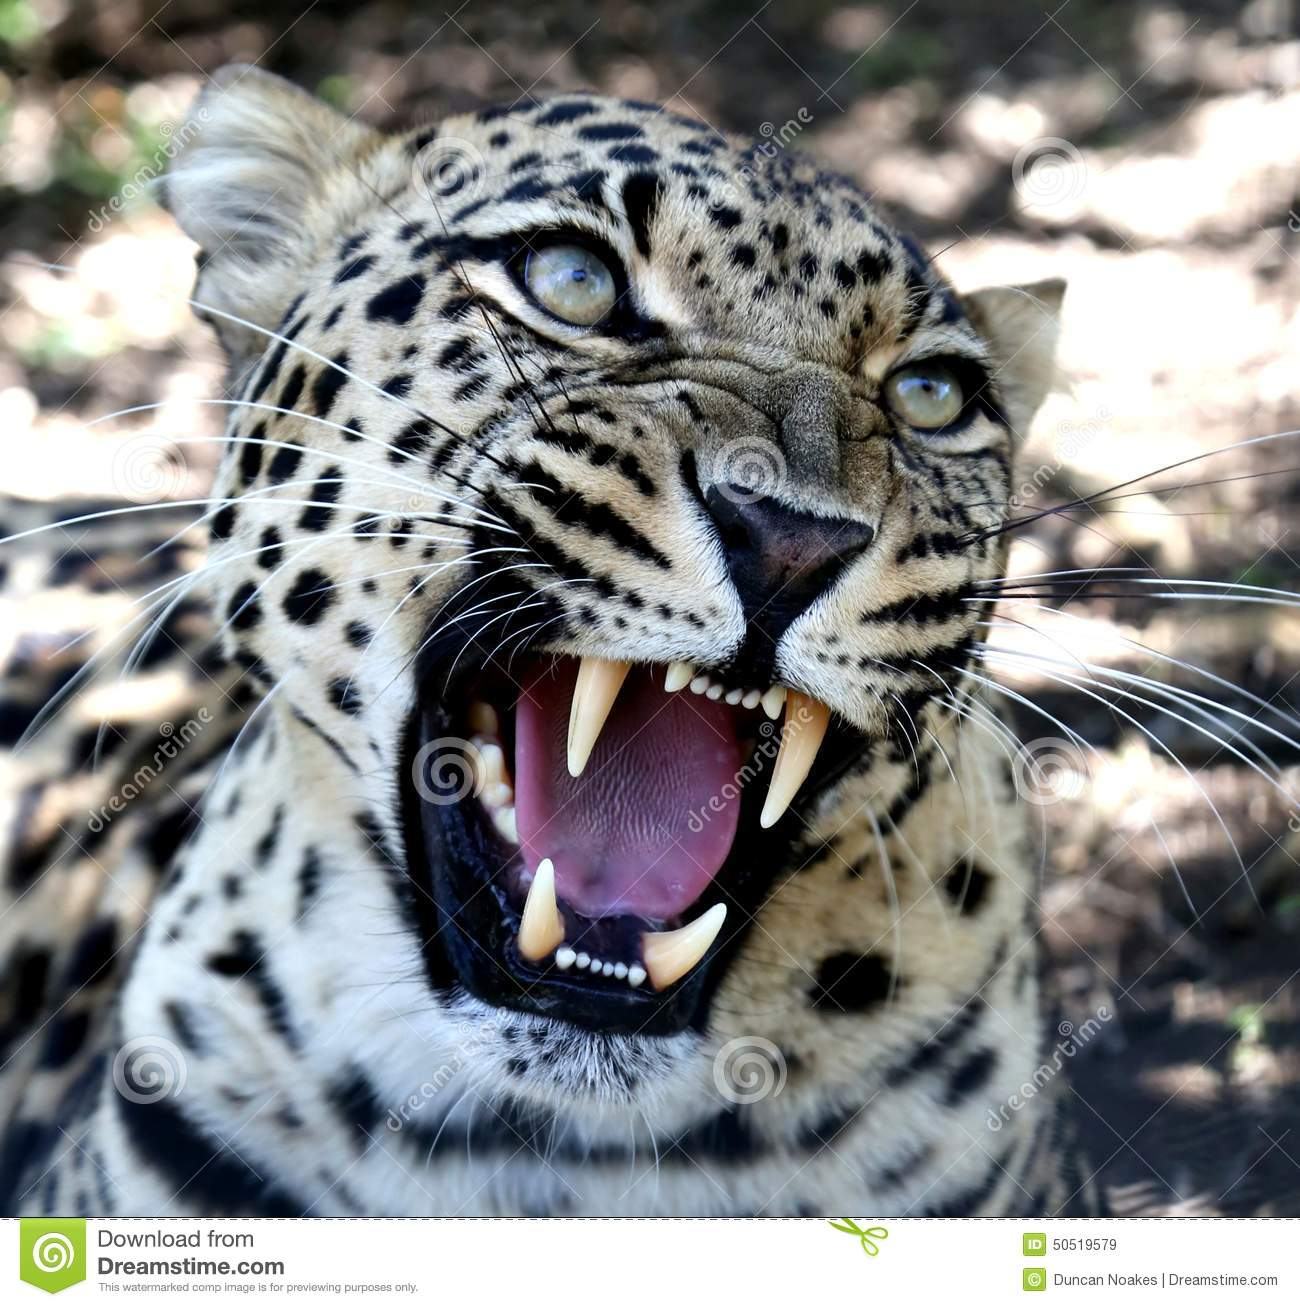 Jaguar Hissing: Snarling Leopard With Huge Teeth Stock Photo